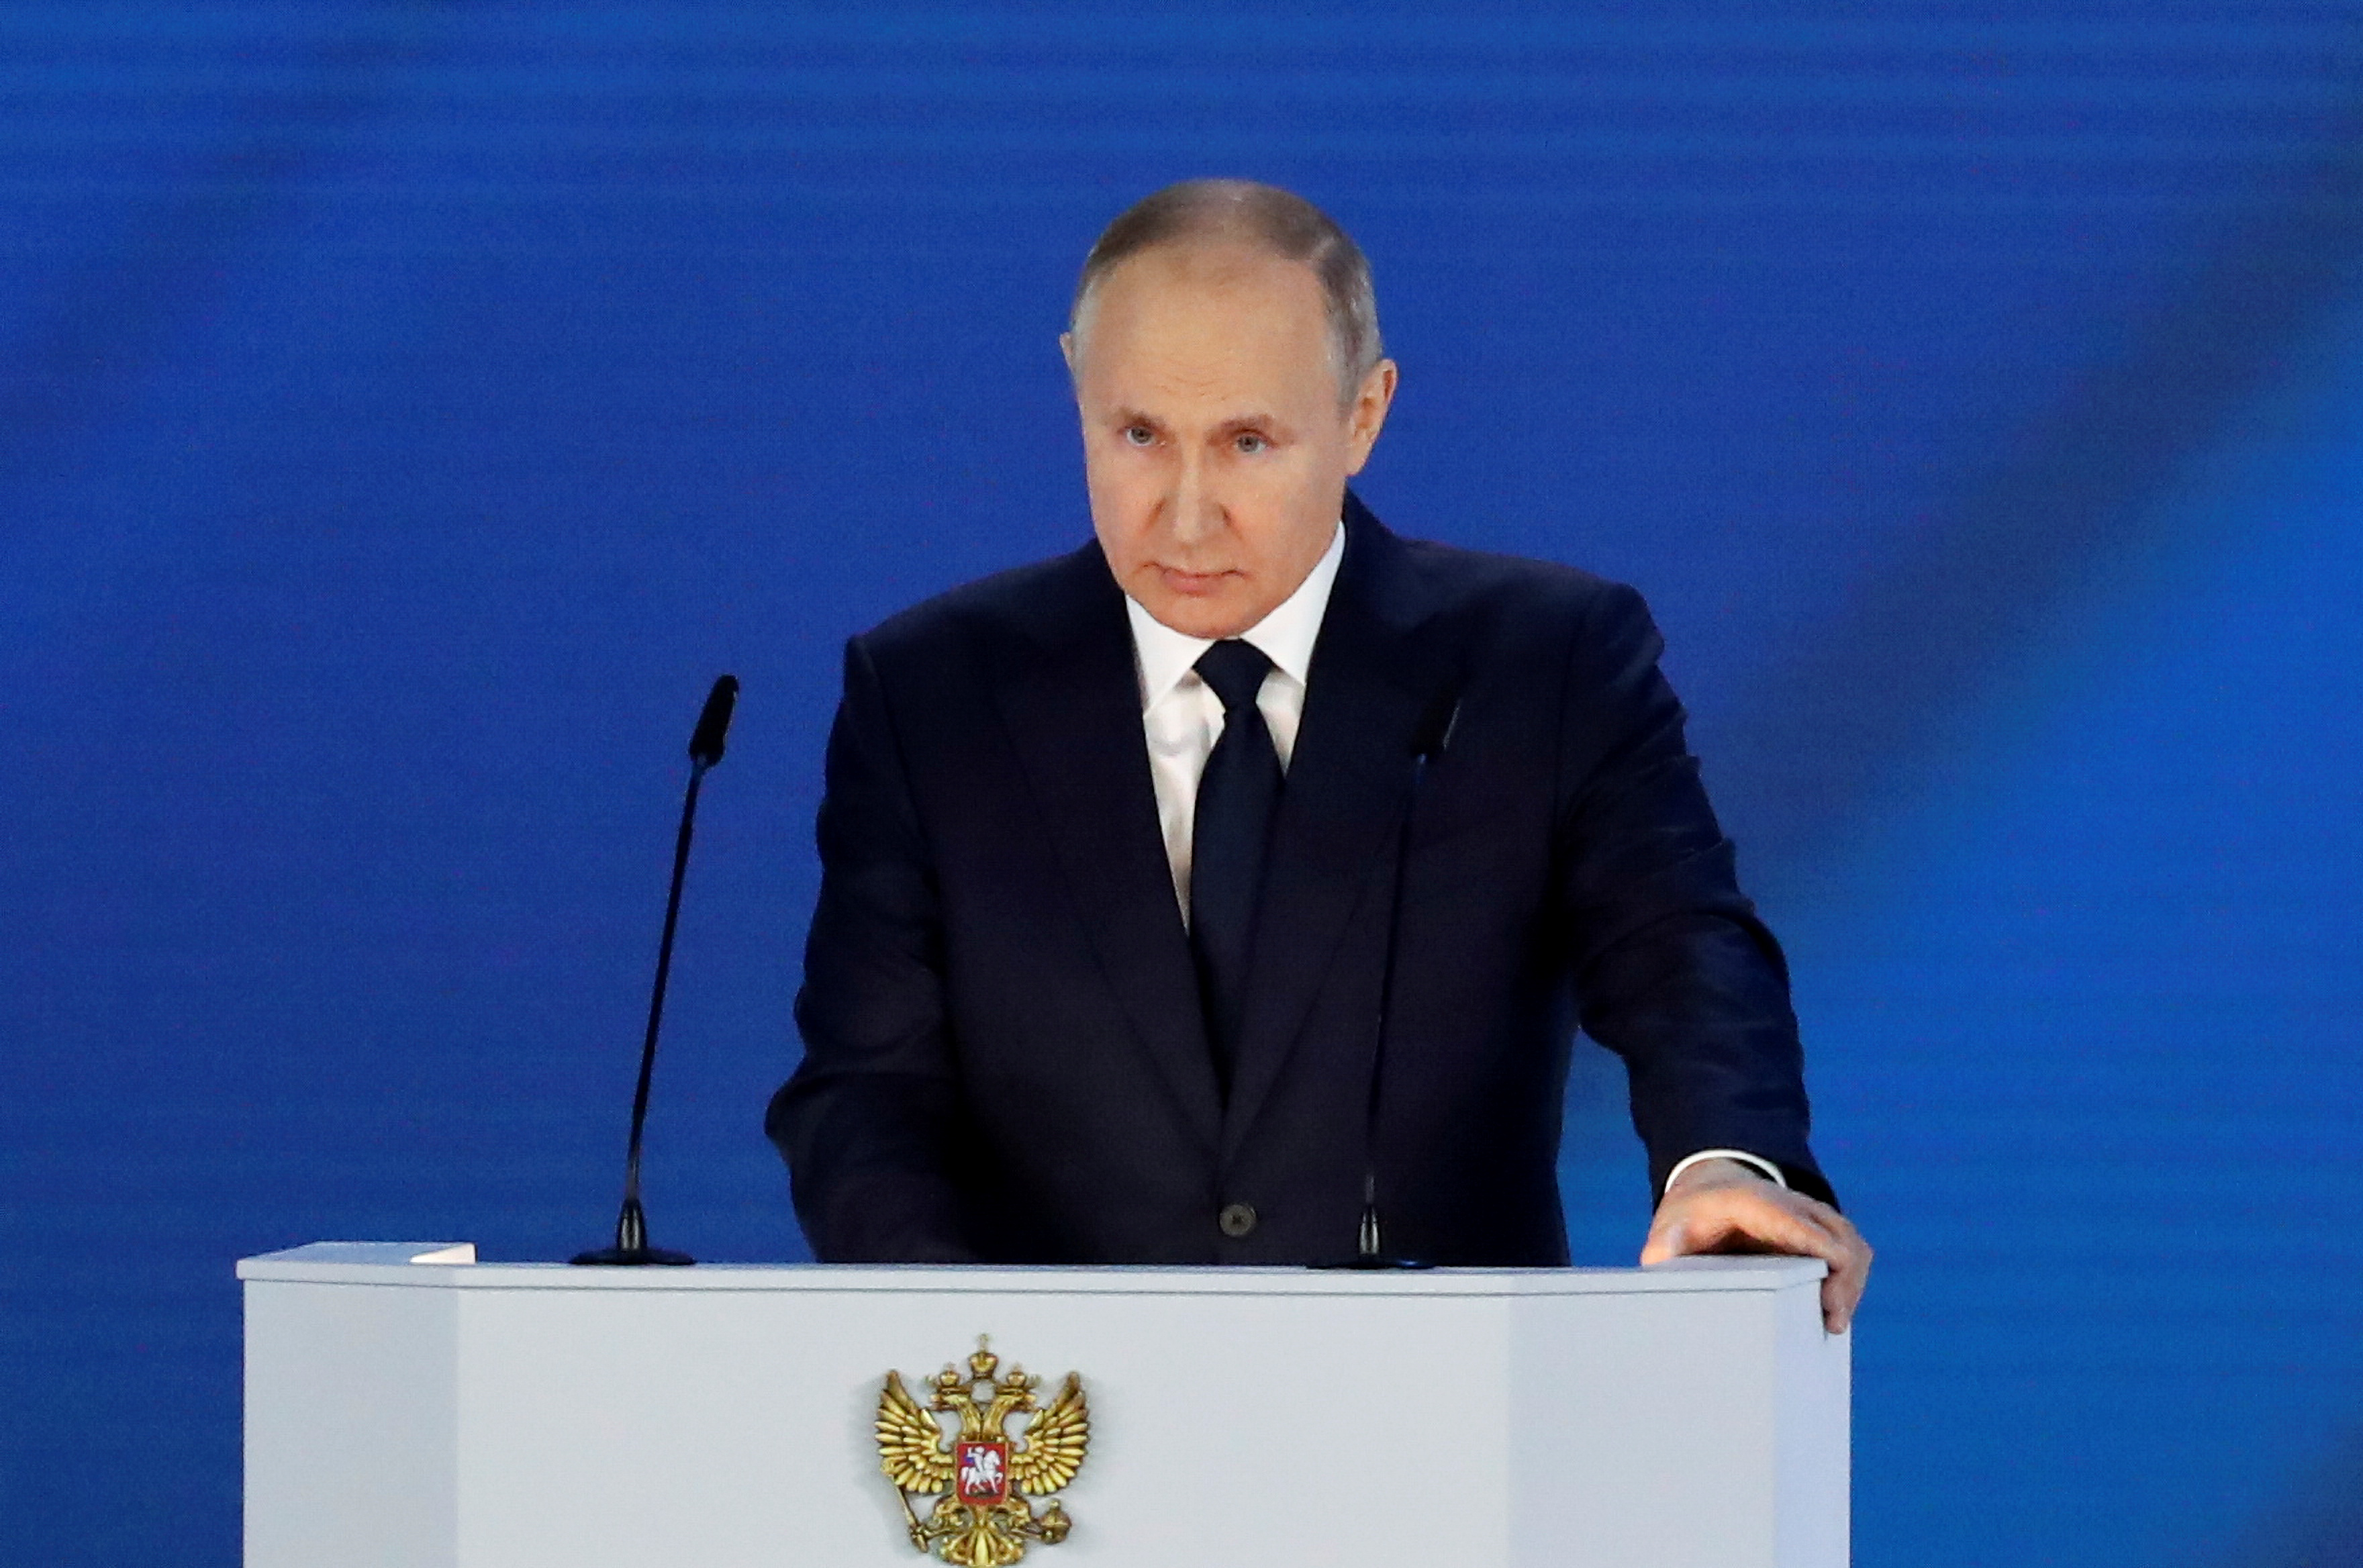 Russian President Vladimir Putin delivers his annual address to the Federal Assembly in Moscow, Russia April 21, 2021. REUTERS/Evgenia Novozhenina